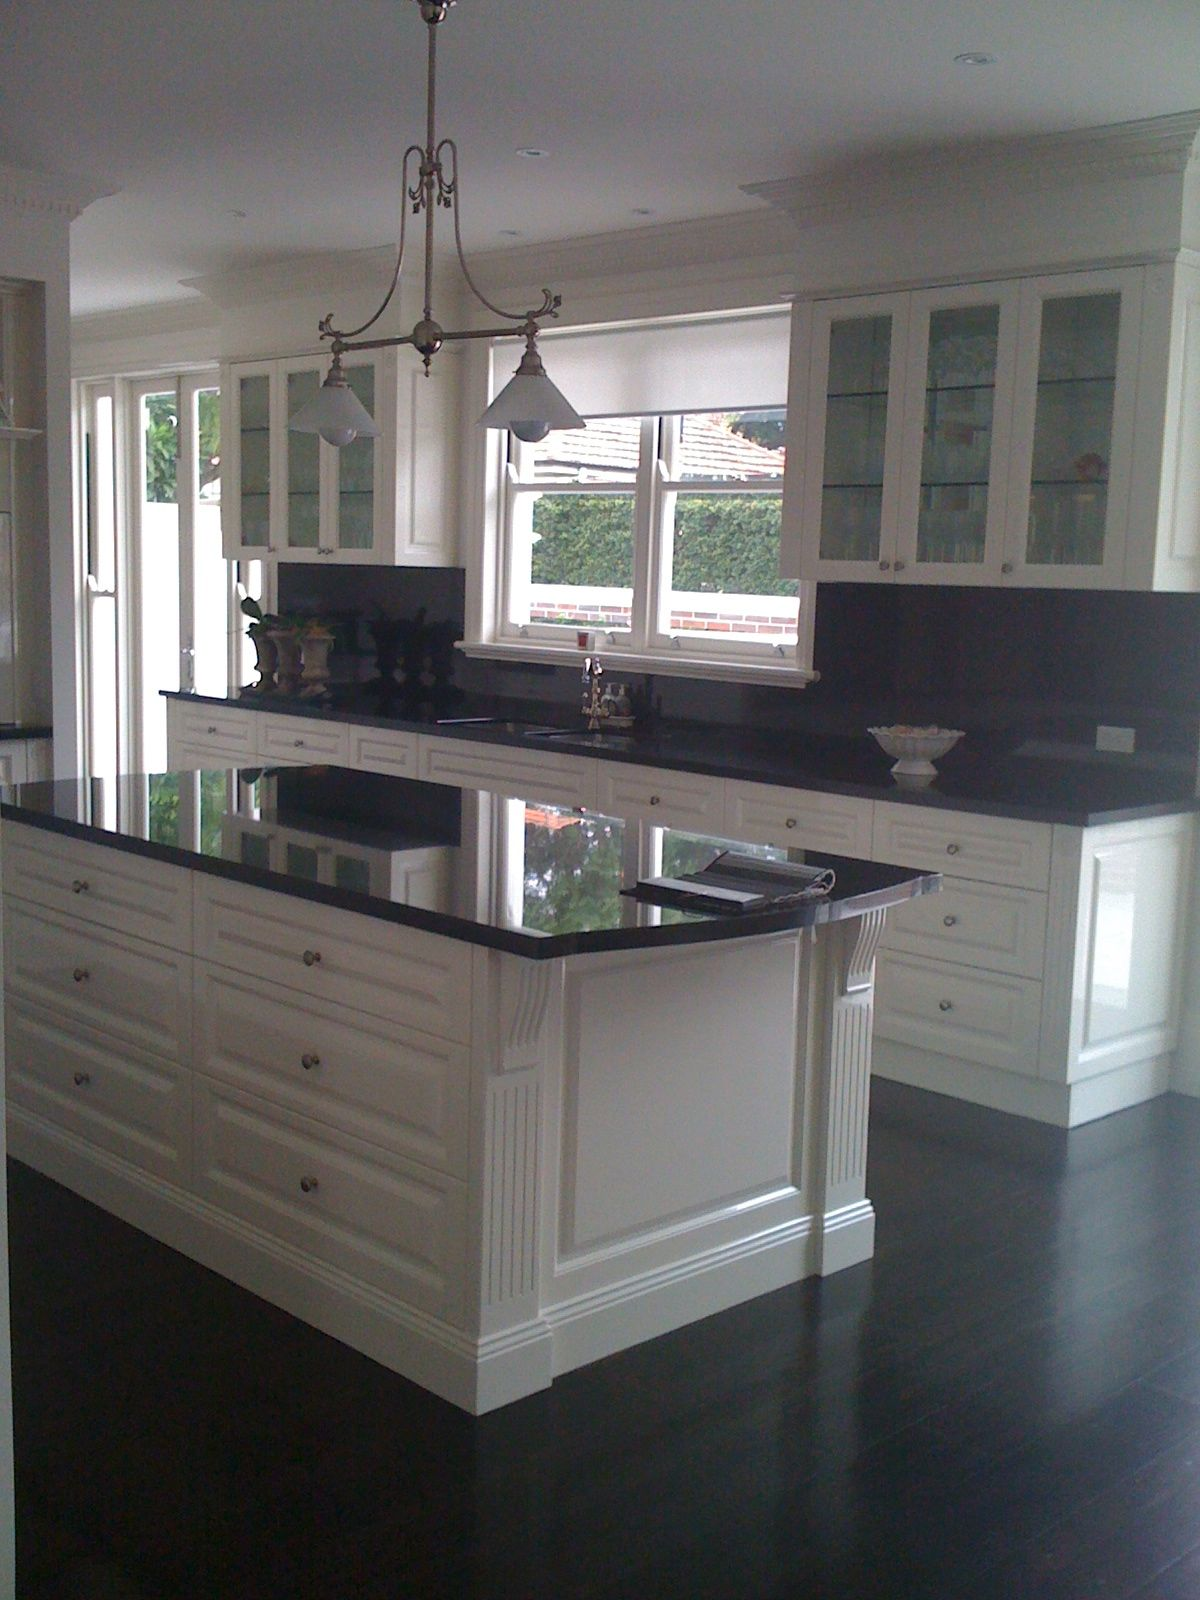 Indah island white cabinets with black granite benchtops ... on Backsplash For Black Granite Countertops And White Cabinets  id=73516